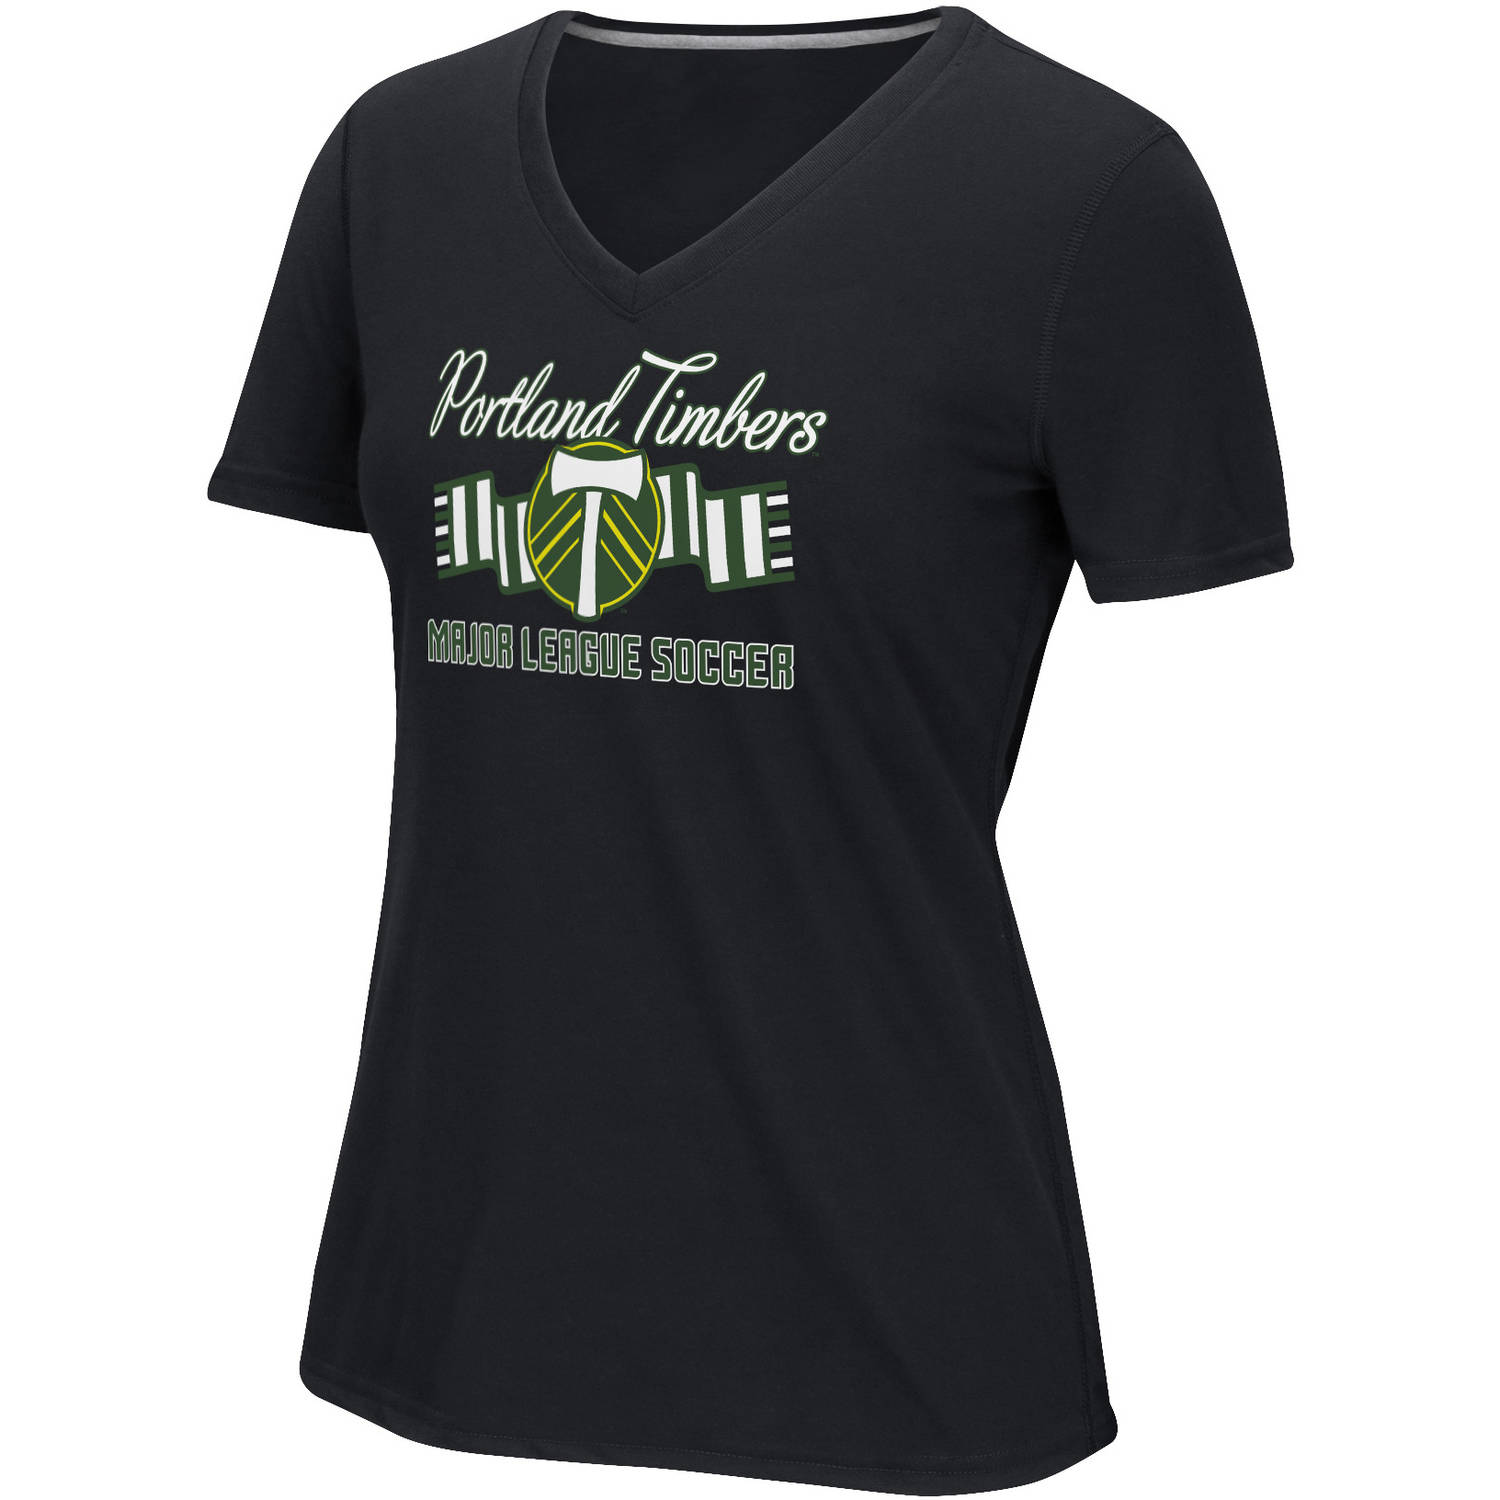 MLS-Portland Timbers-Women's Middle Logo Scarf Tee